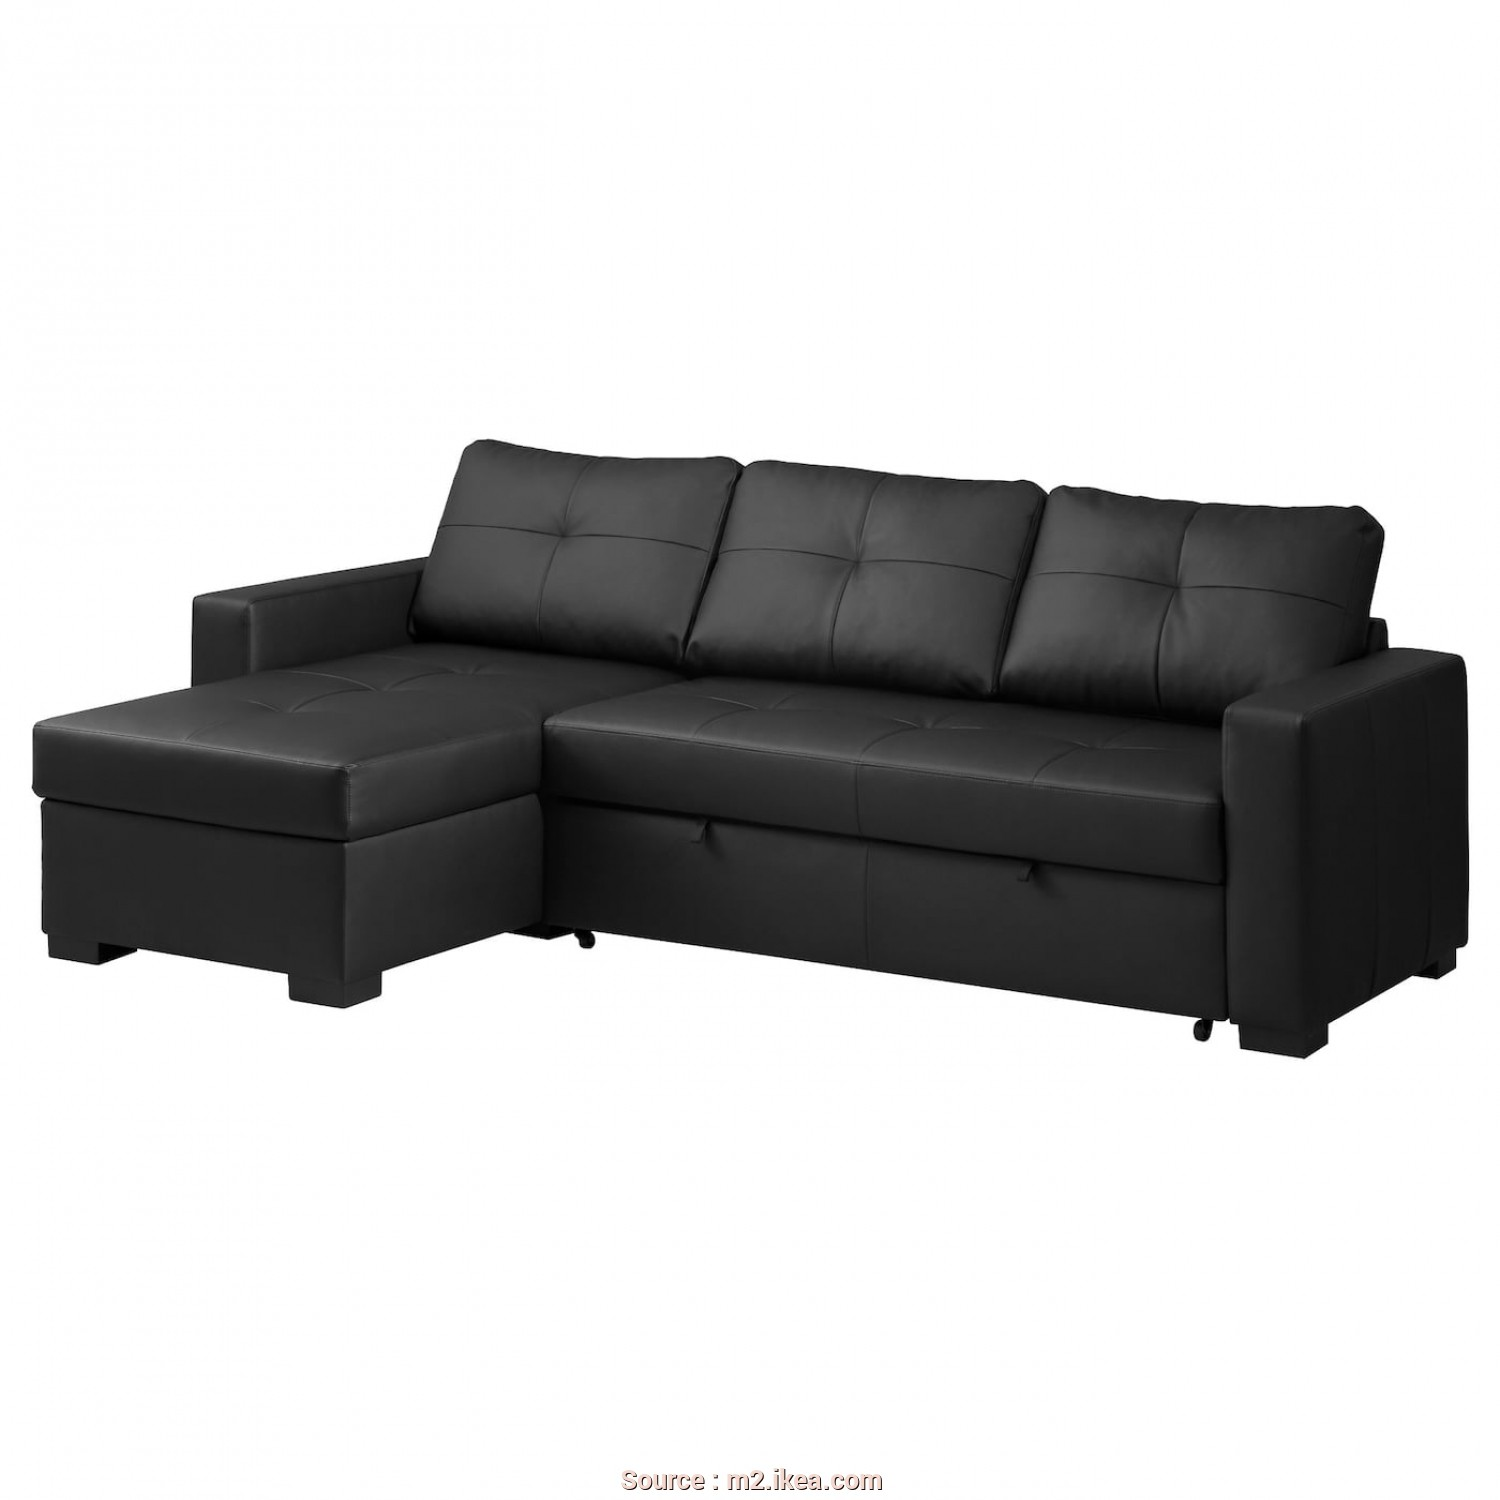 Ikea Vilasund Kokemuksia, Affascinante Corner Sofa-Bed With Storage RAGUNDA Kimstad Black